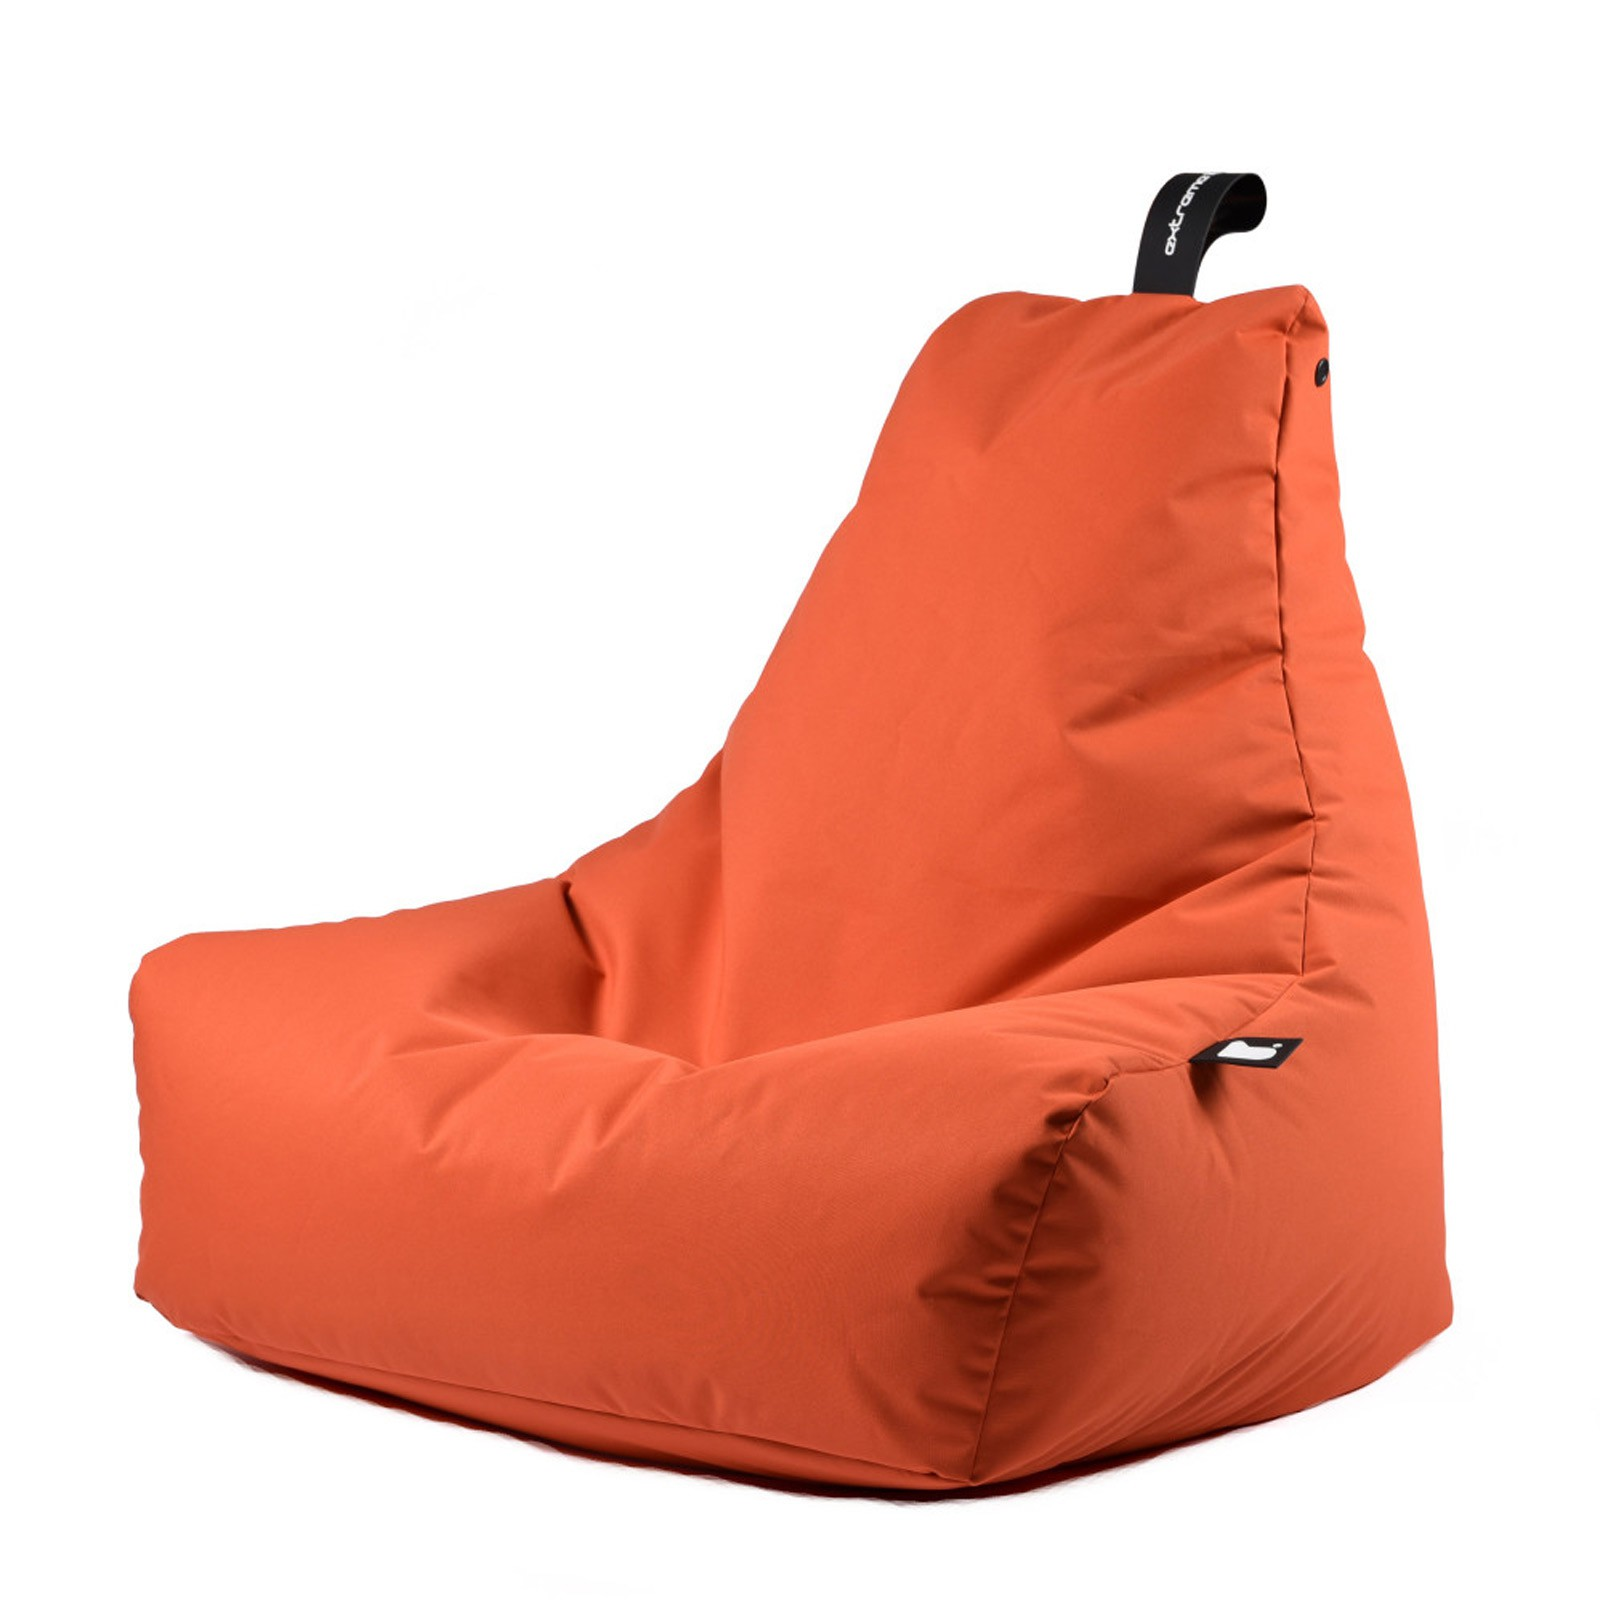 Sack Zum Sitzen B Bag Extreme Lounging Sitzsack Indoor 43 Outdoor Mighty B